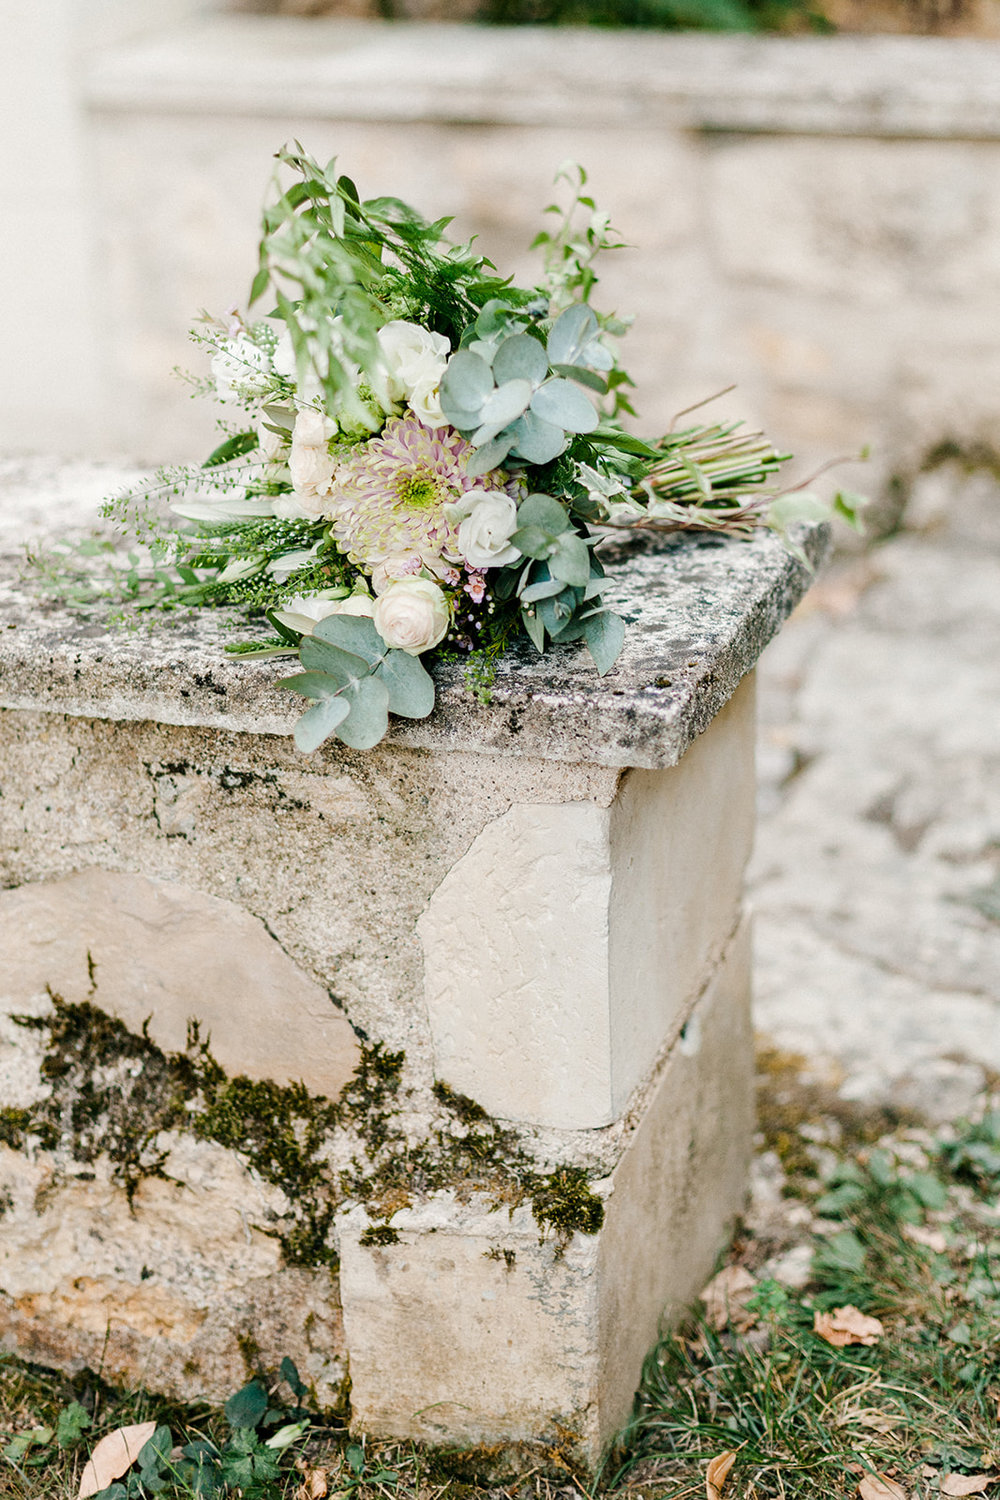 French Chateau Wedding, Events by Reagan, France Wedding, Destination Wedding Planner, Flower bouquet